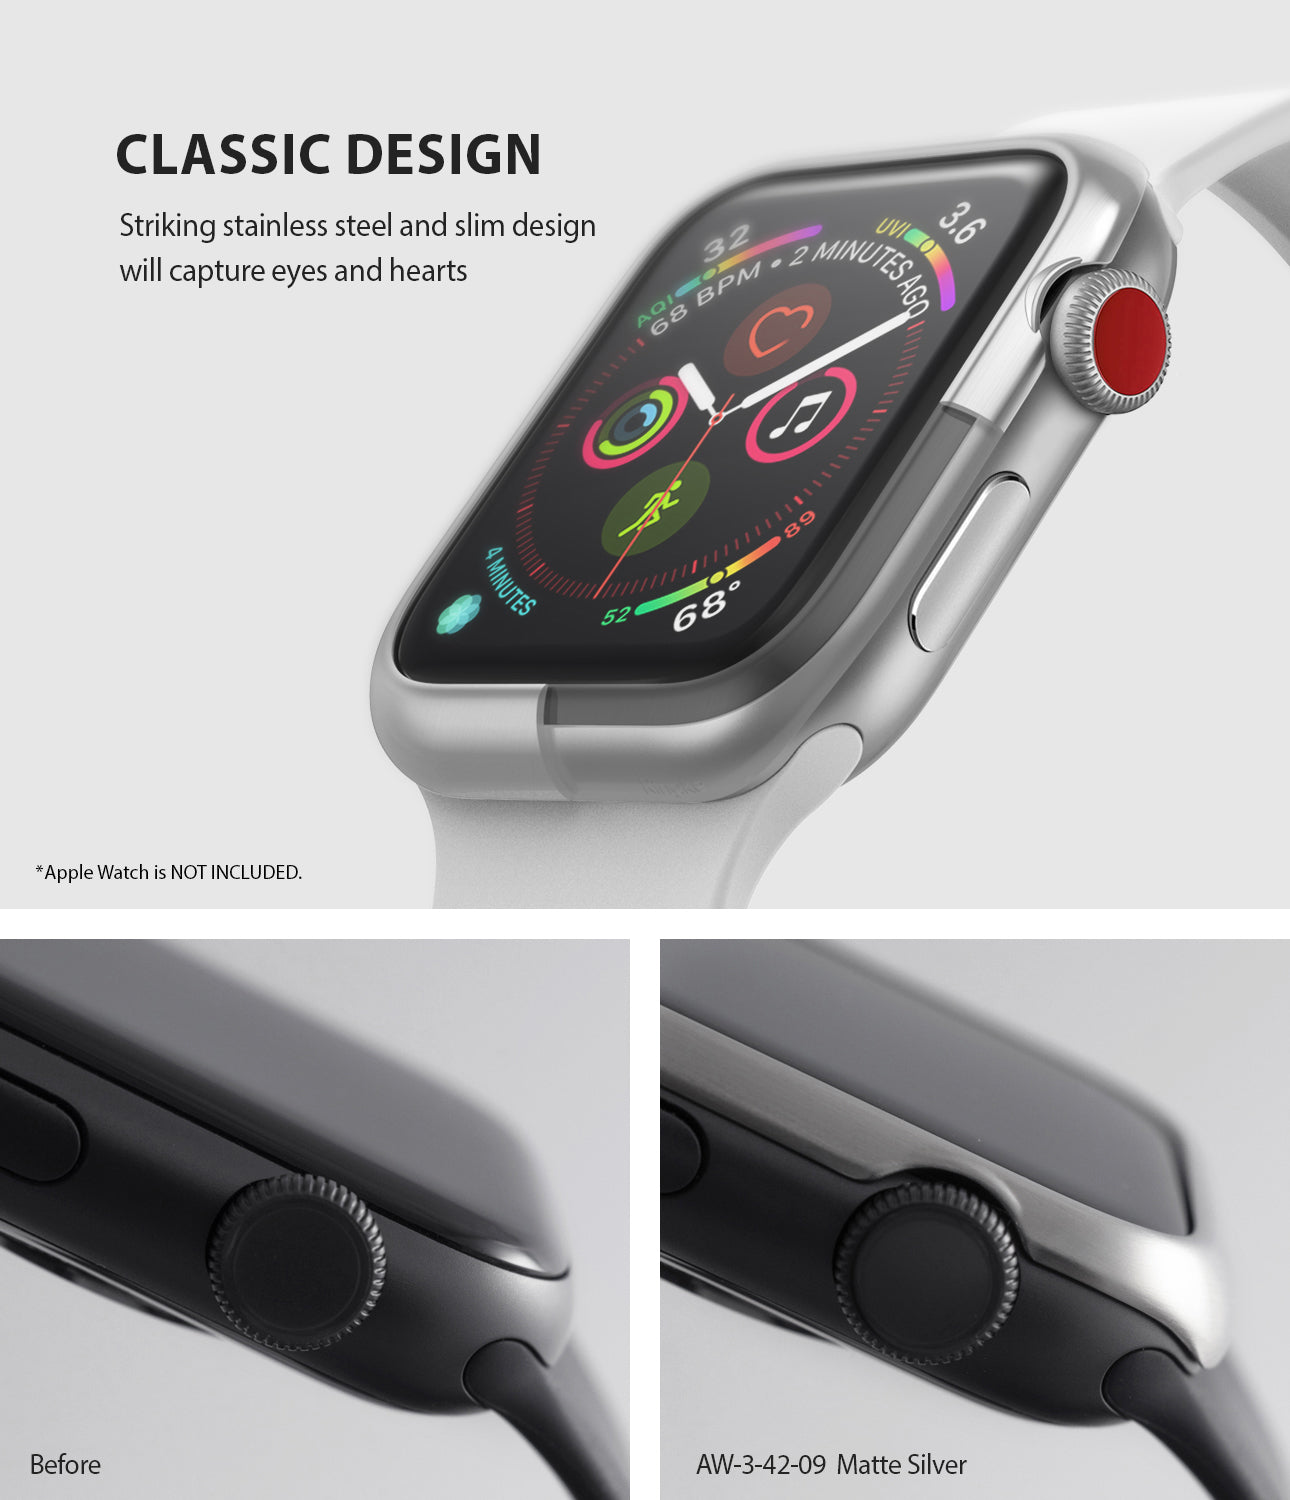 apple watch 3 2 1 42mm case ringke bezel styling stainless steel frame cover 42-09 classic design